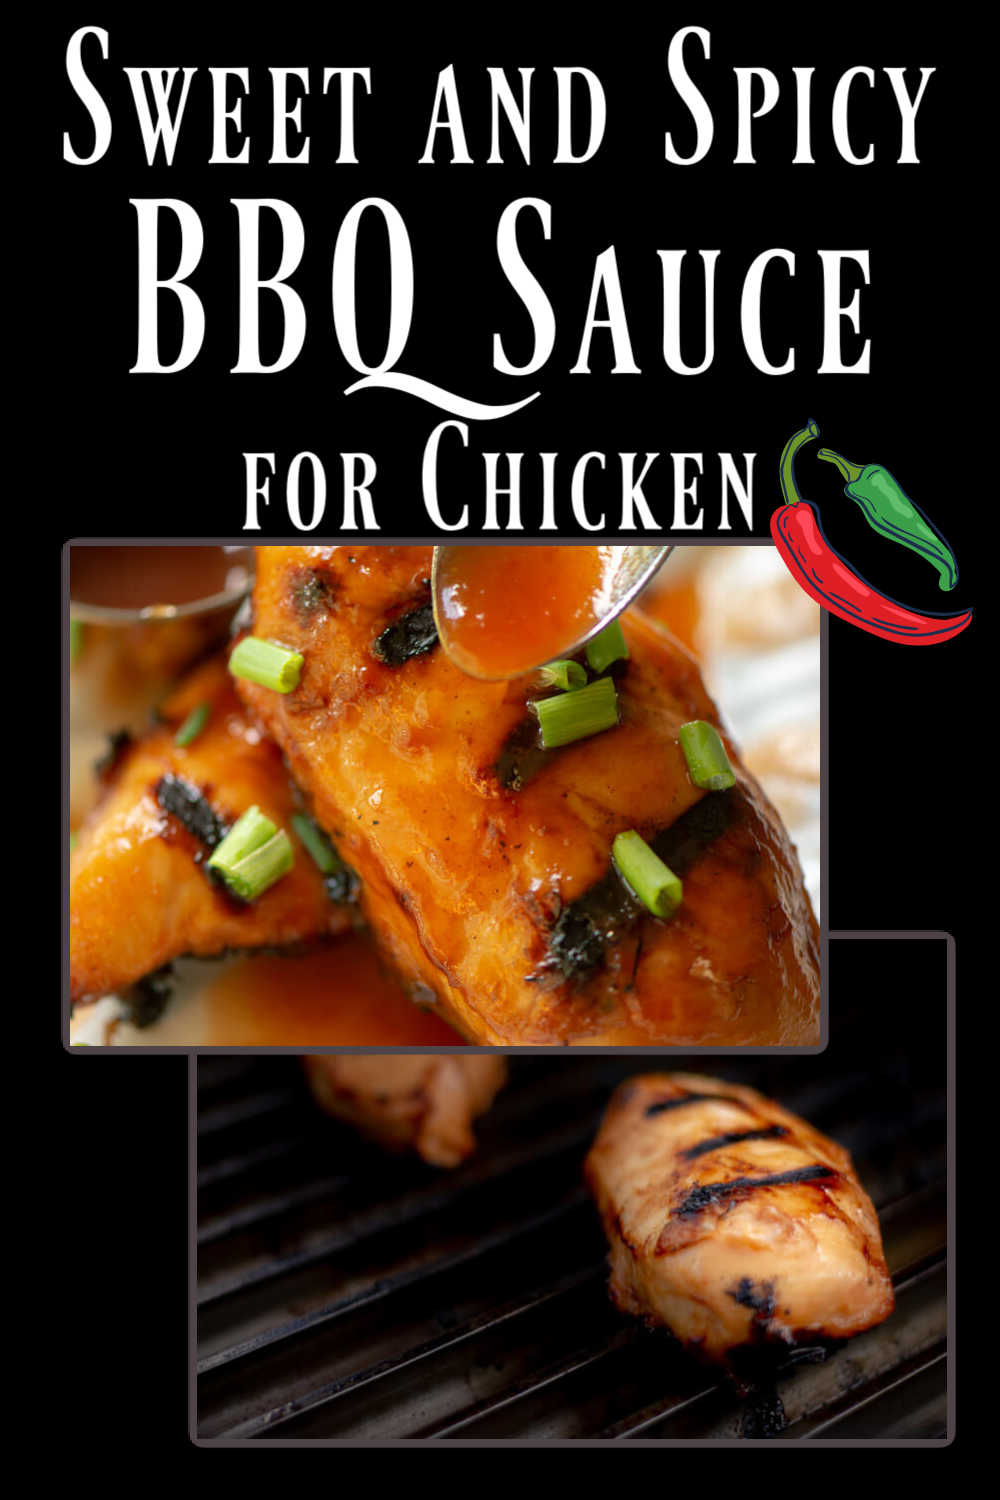 Sweet and Spicy BBQ Sauce Recipe for Grilled Chicken